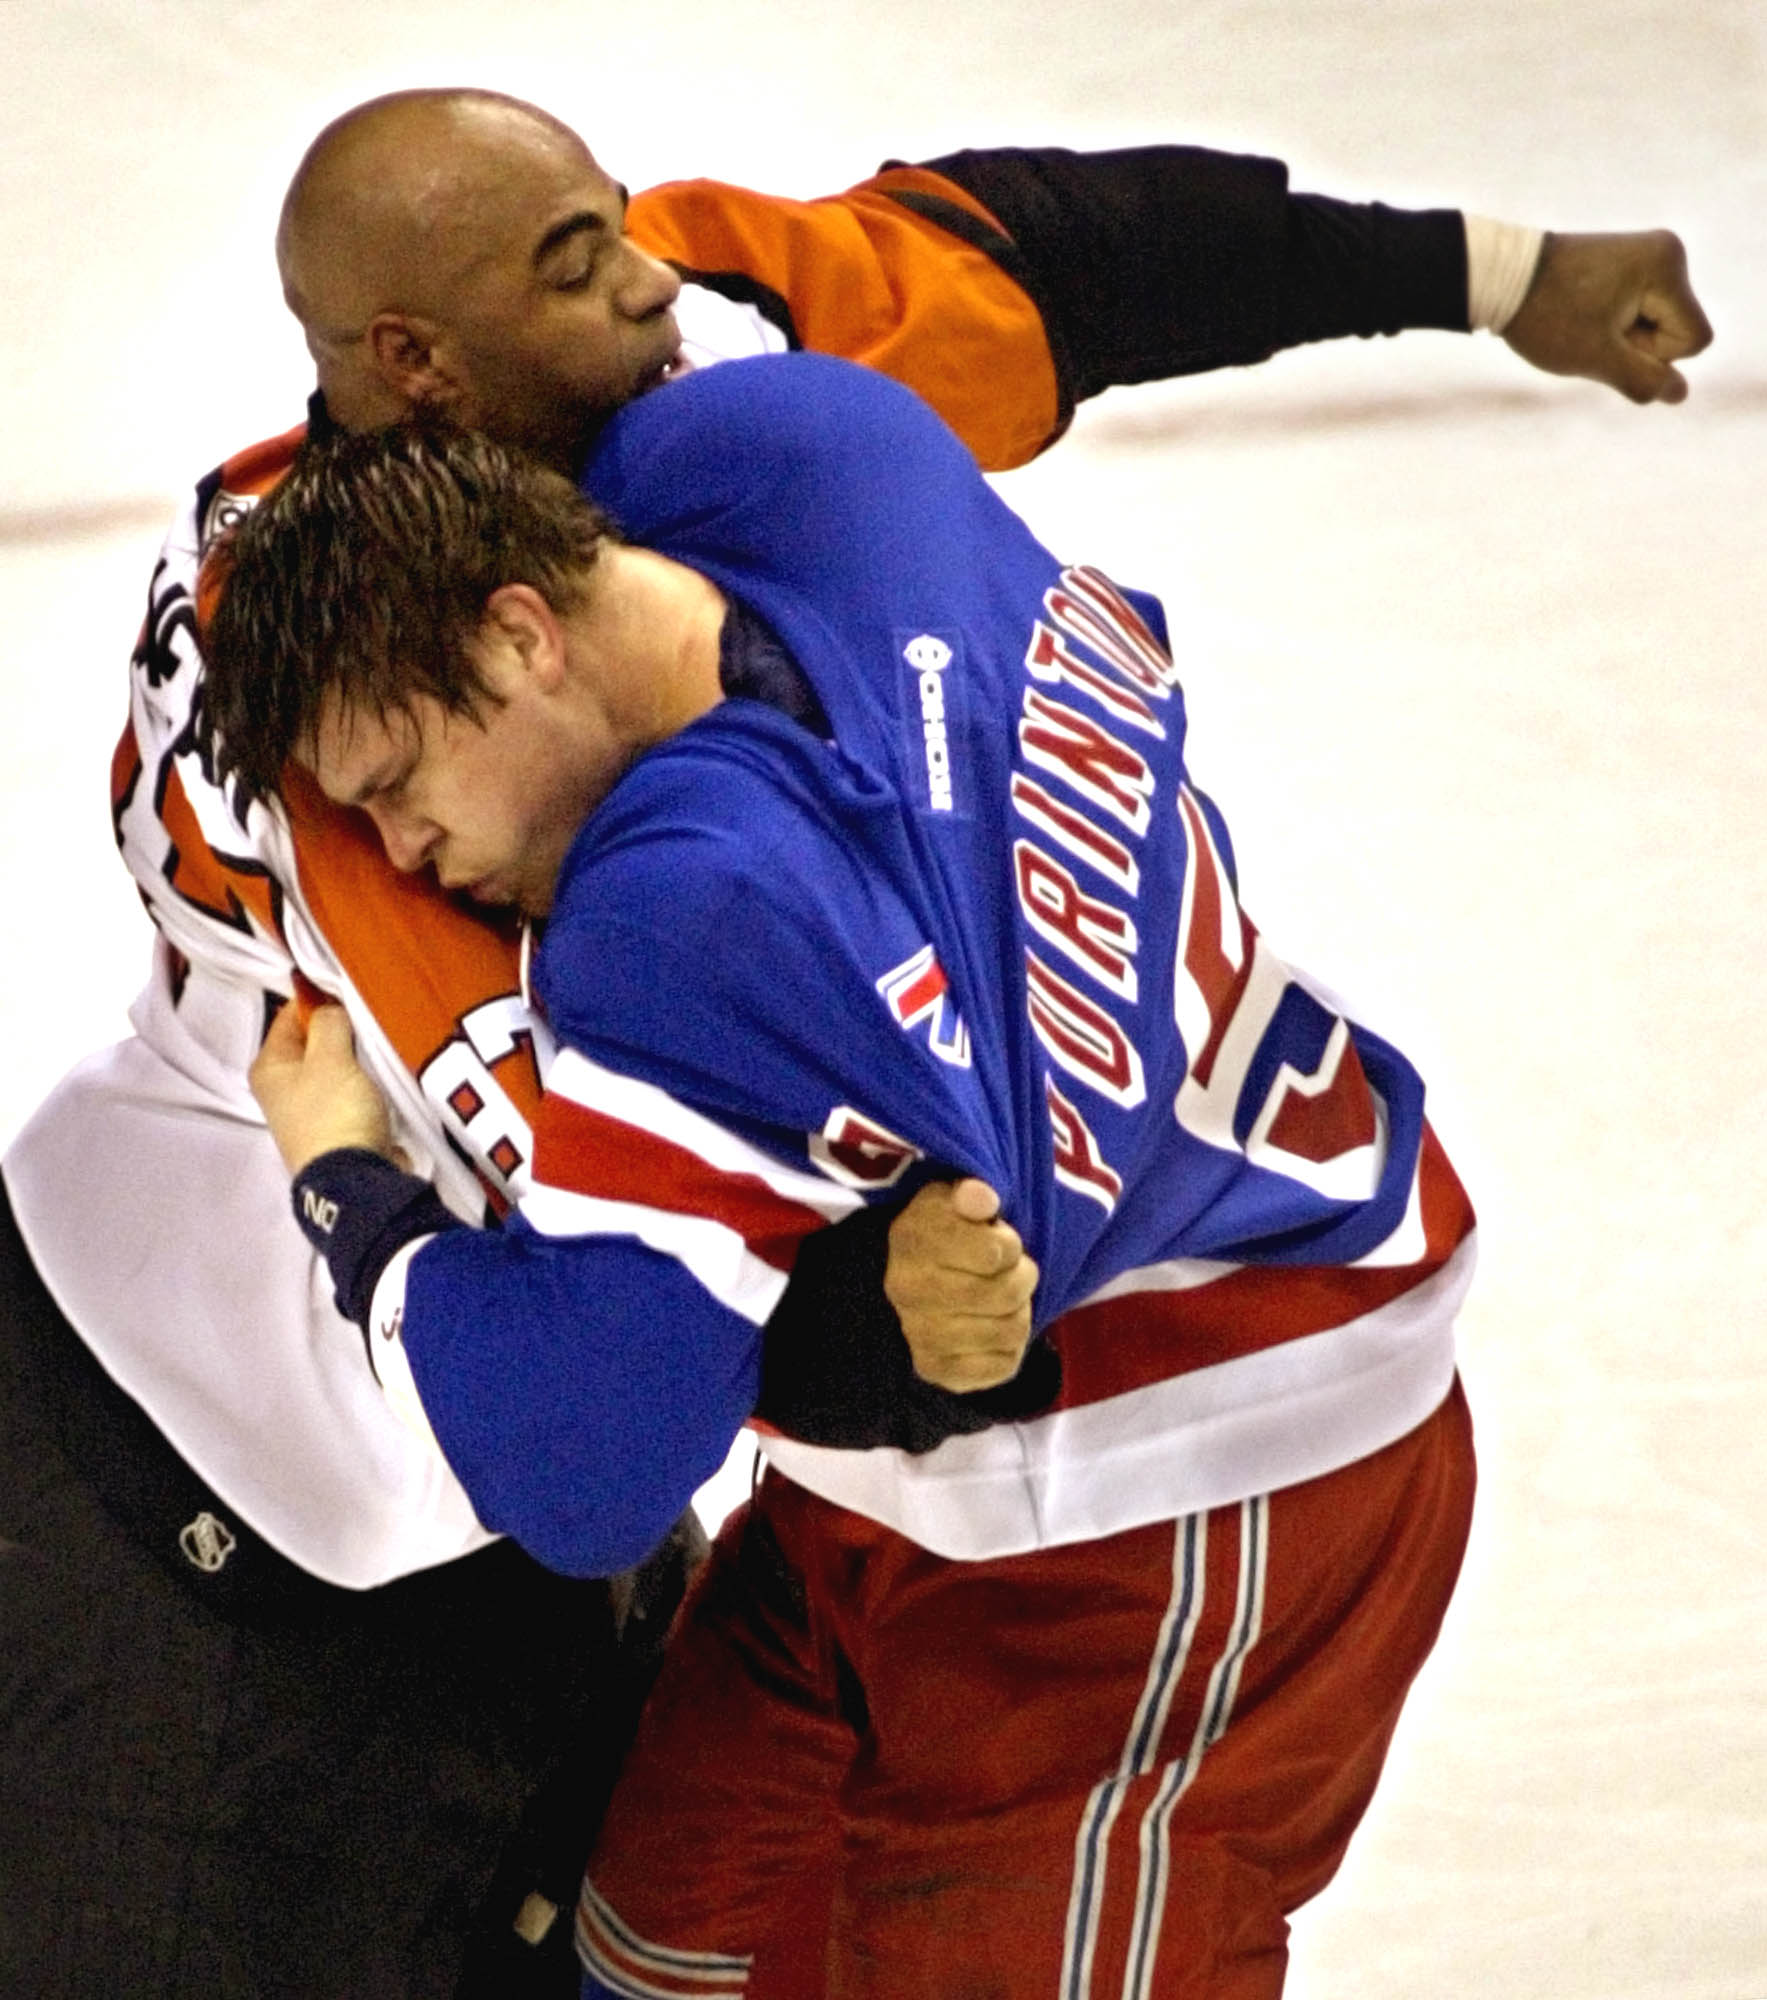 New York Rangers' Dale Purinton, right, and Philadelphia Flyers' Donald Brashear battle in the first period in Philadelphia Saturday, April 13, 2002.  Both received five minute penalties. (AP Photo/ Miles Kennedy)